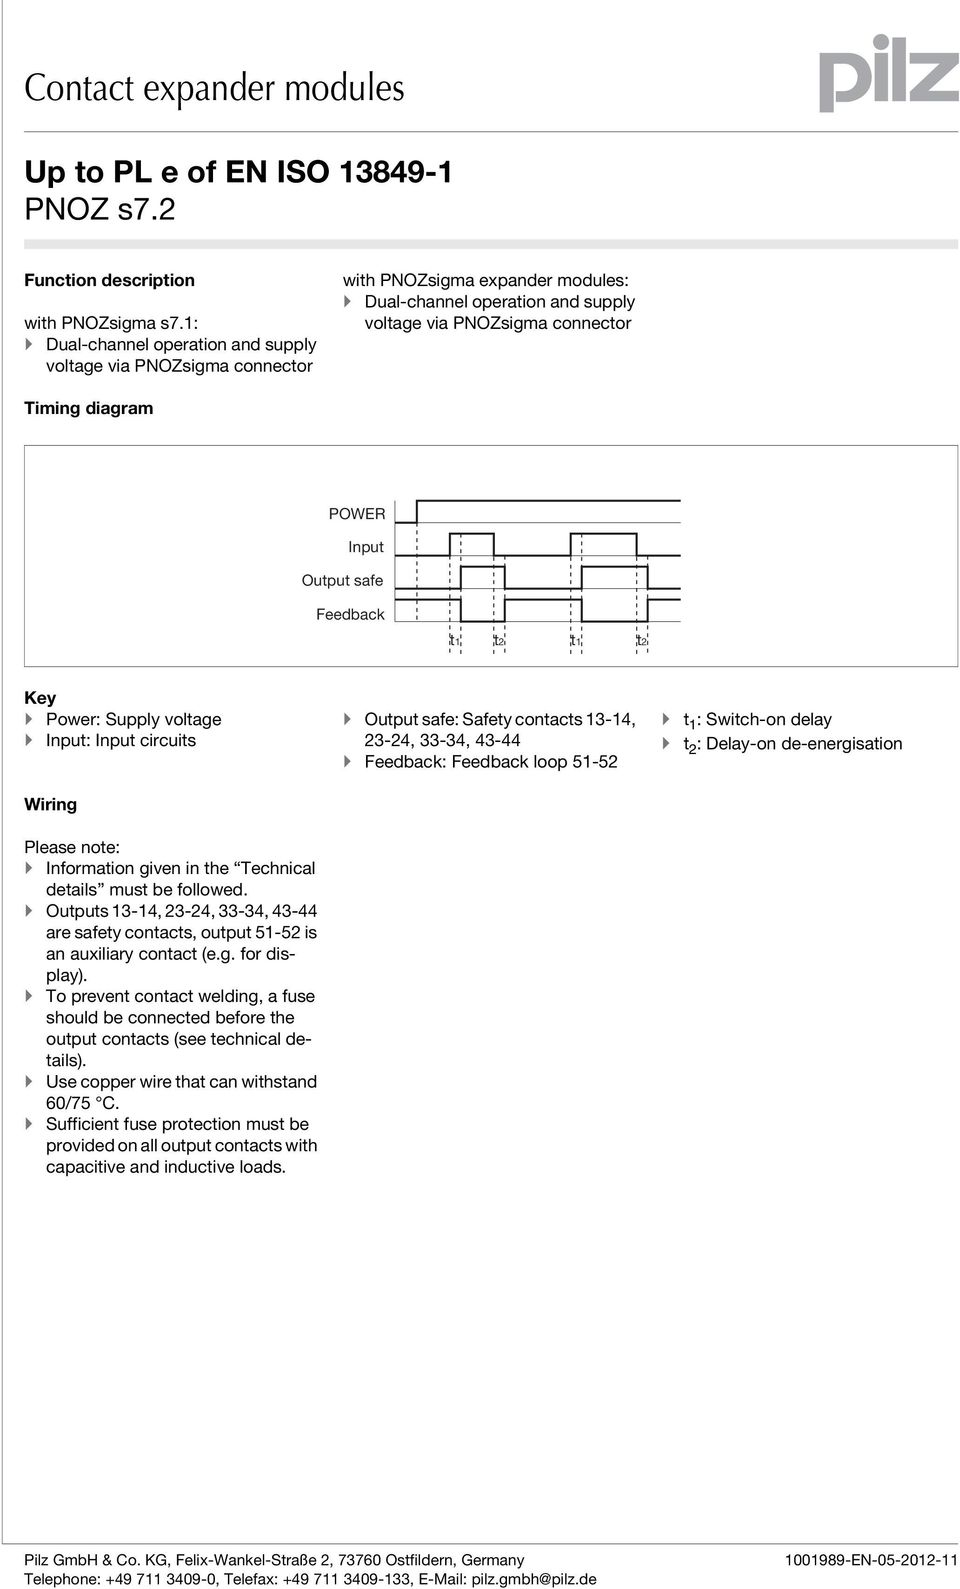 ][Zeitdiagram_PNOZs_Kontakterw_in_out_aux-rfk POWER Input Output safe Feedback t1 t2 t1 t2 Key Power: Supply voltage Input: Input circuits Wiring Verdrahtung Please note: Information given in the